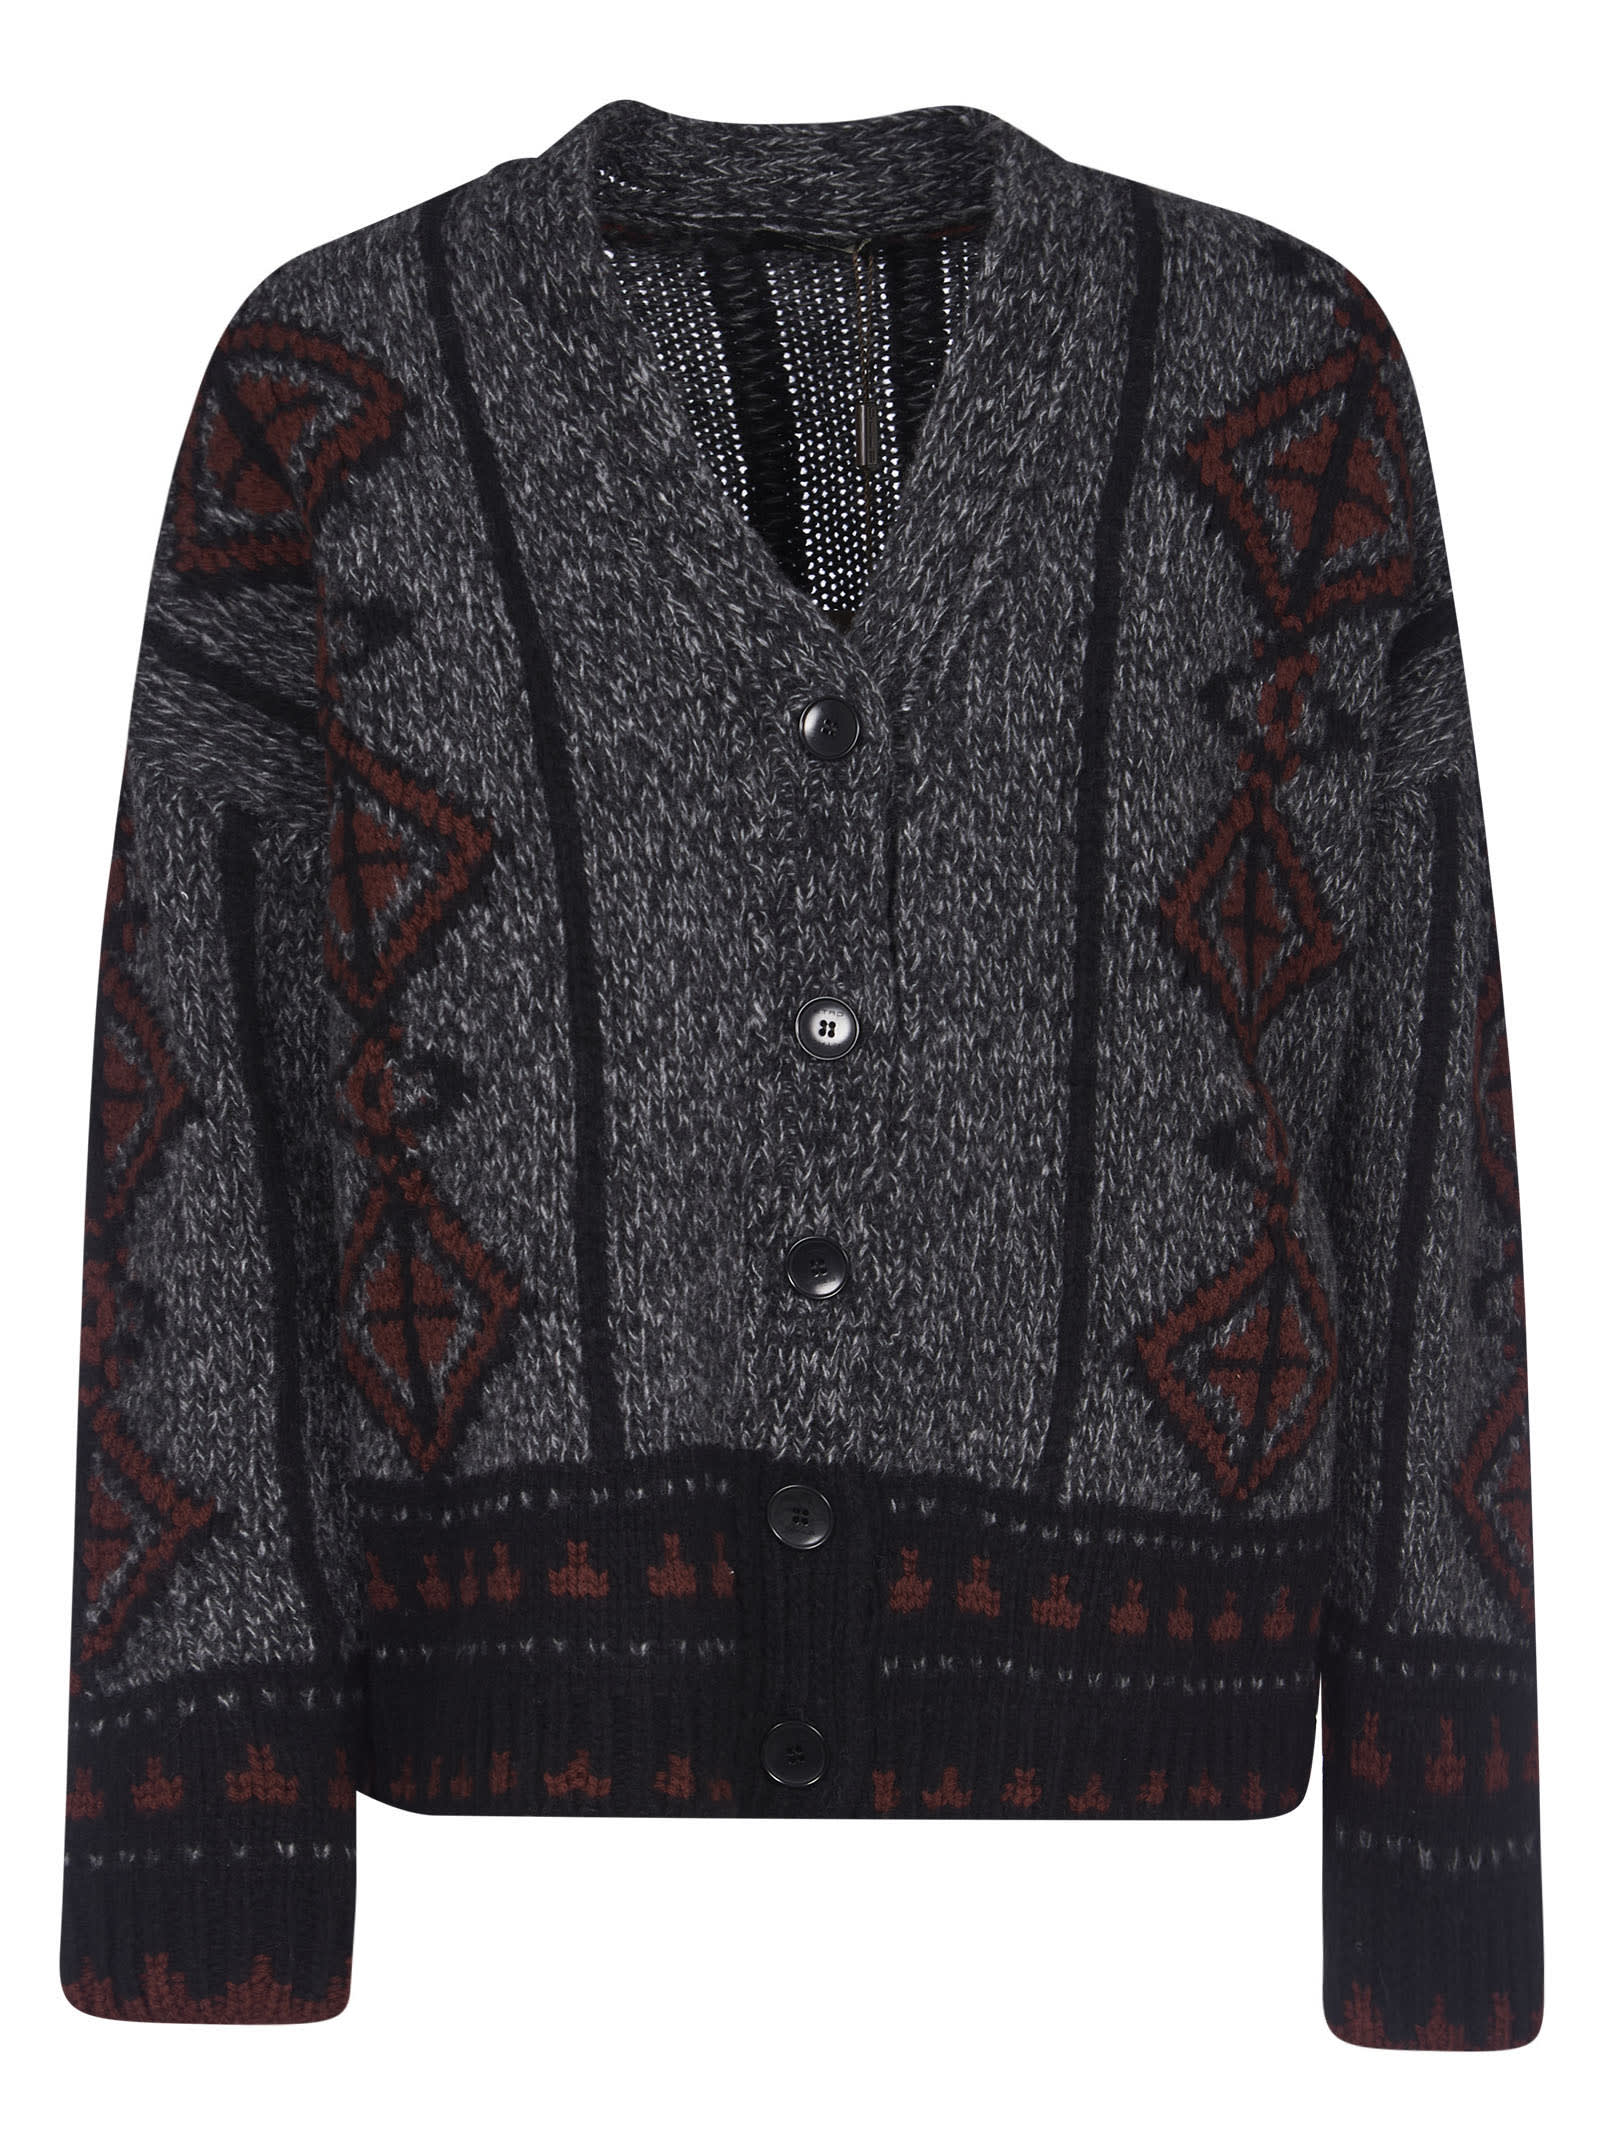 Etro WOVEN PATTERNED CARDIGAN